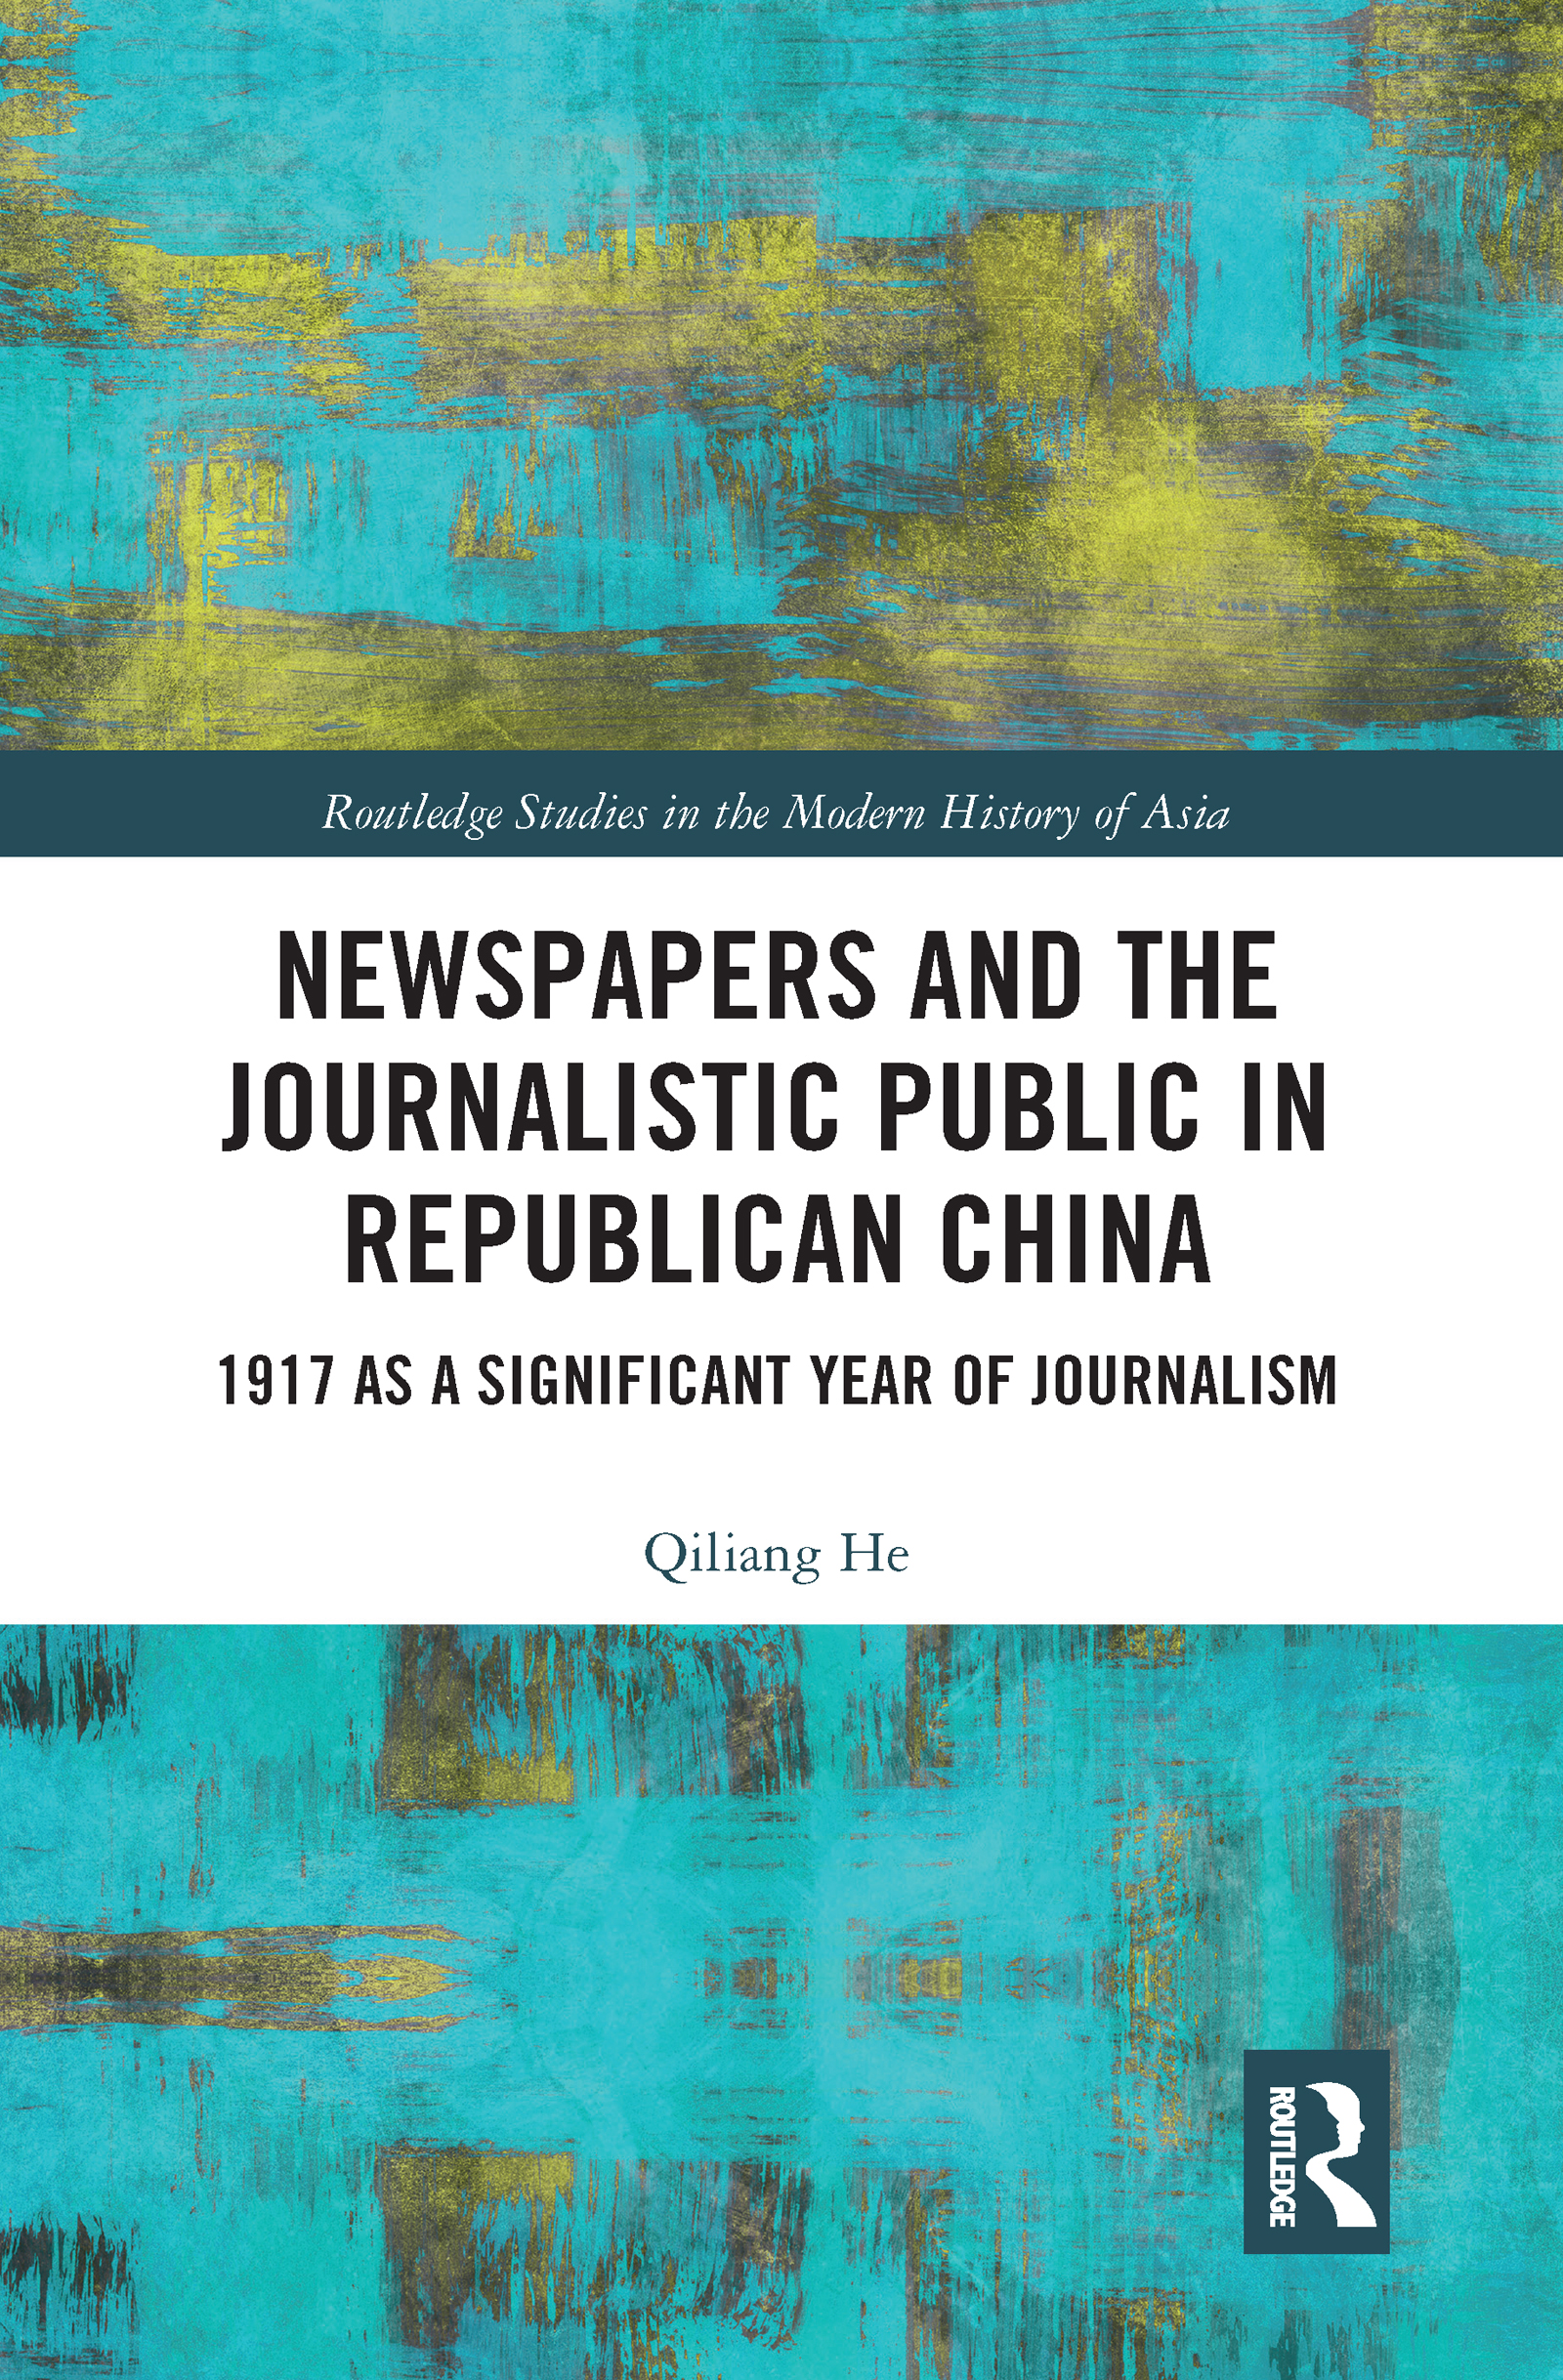 Newspapers and the Journalistic Public in Republican China